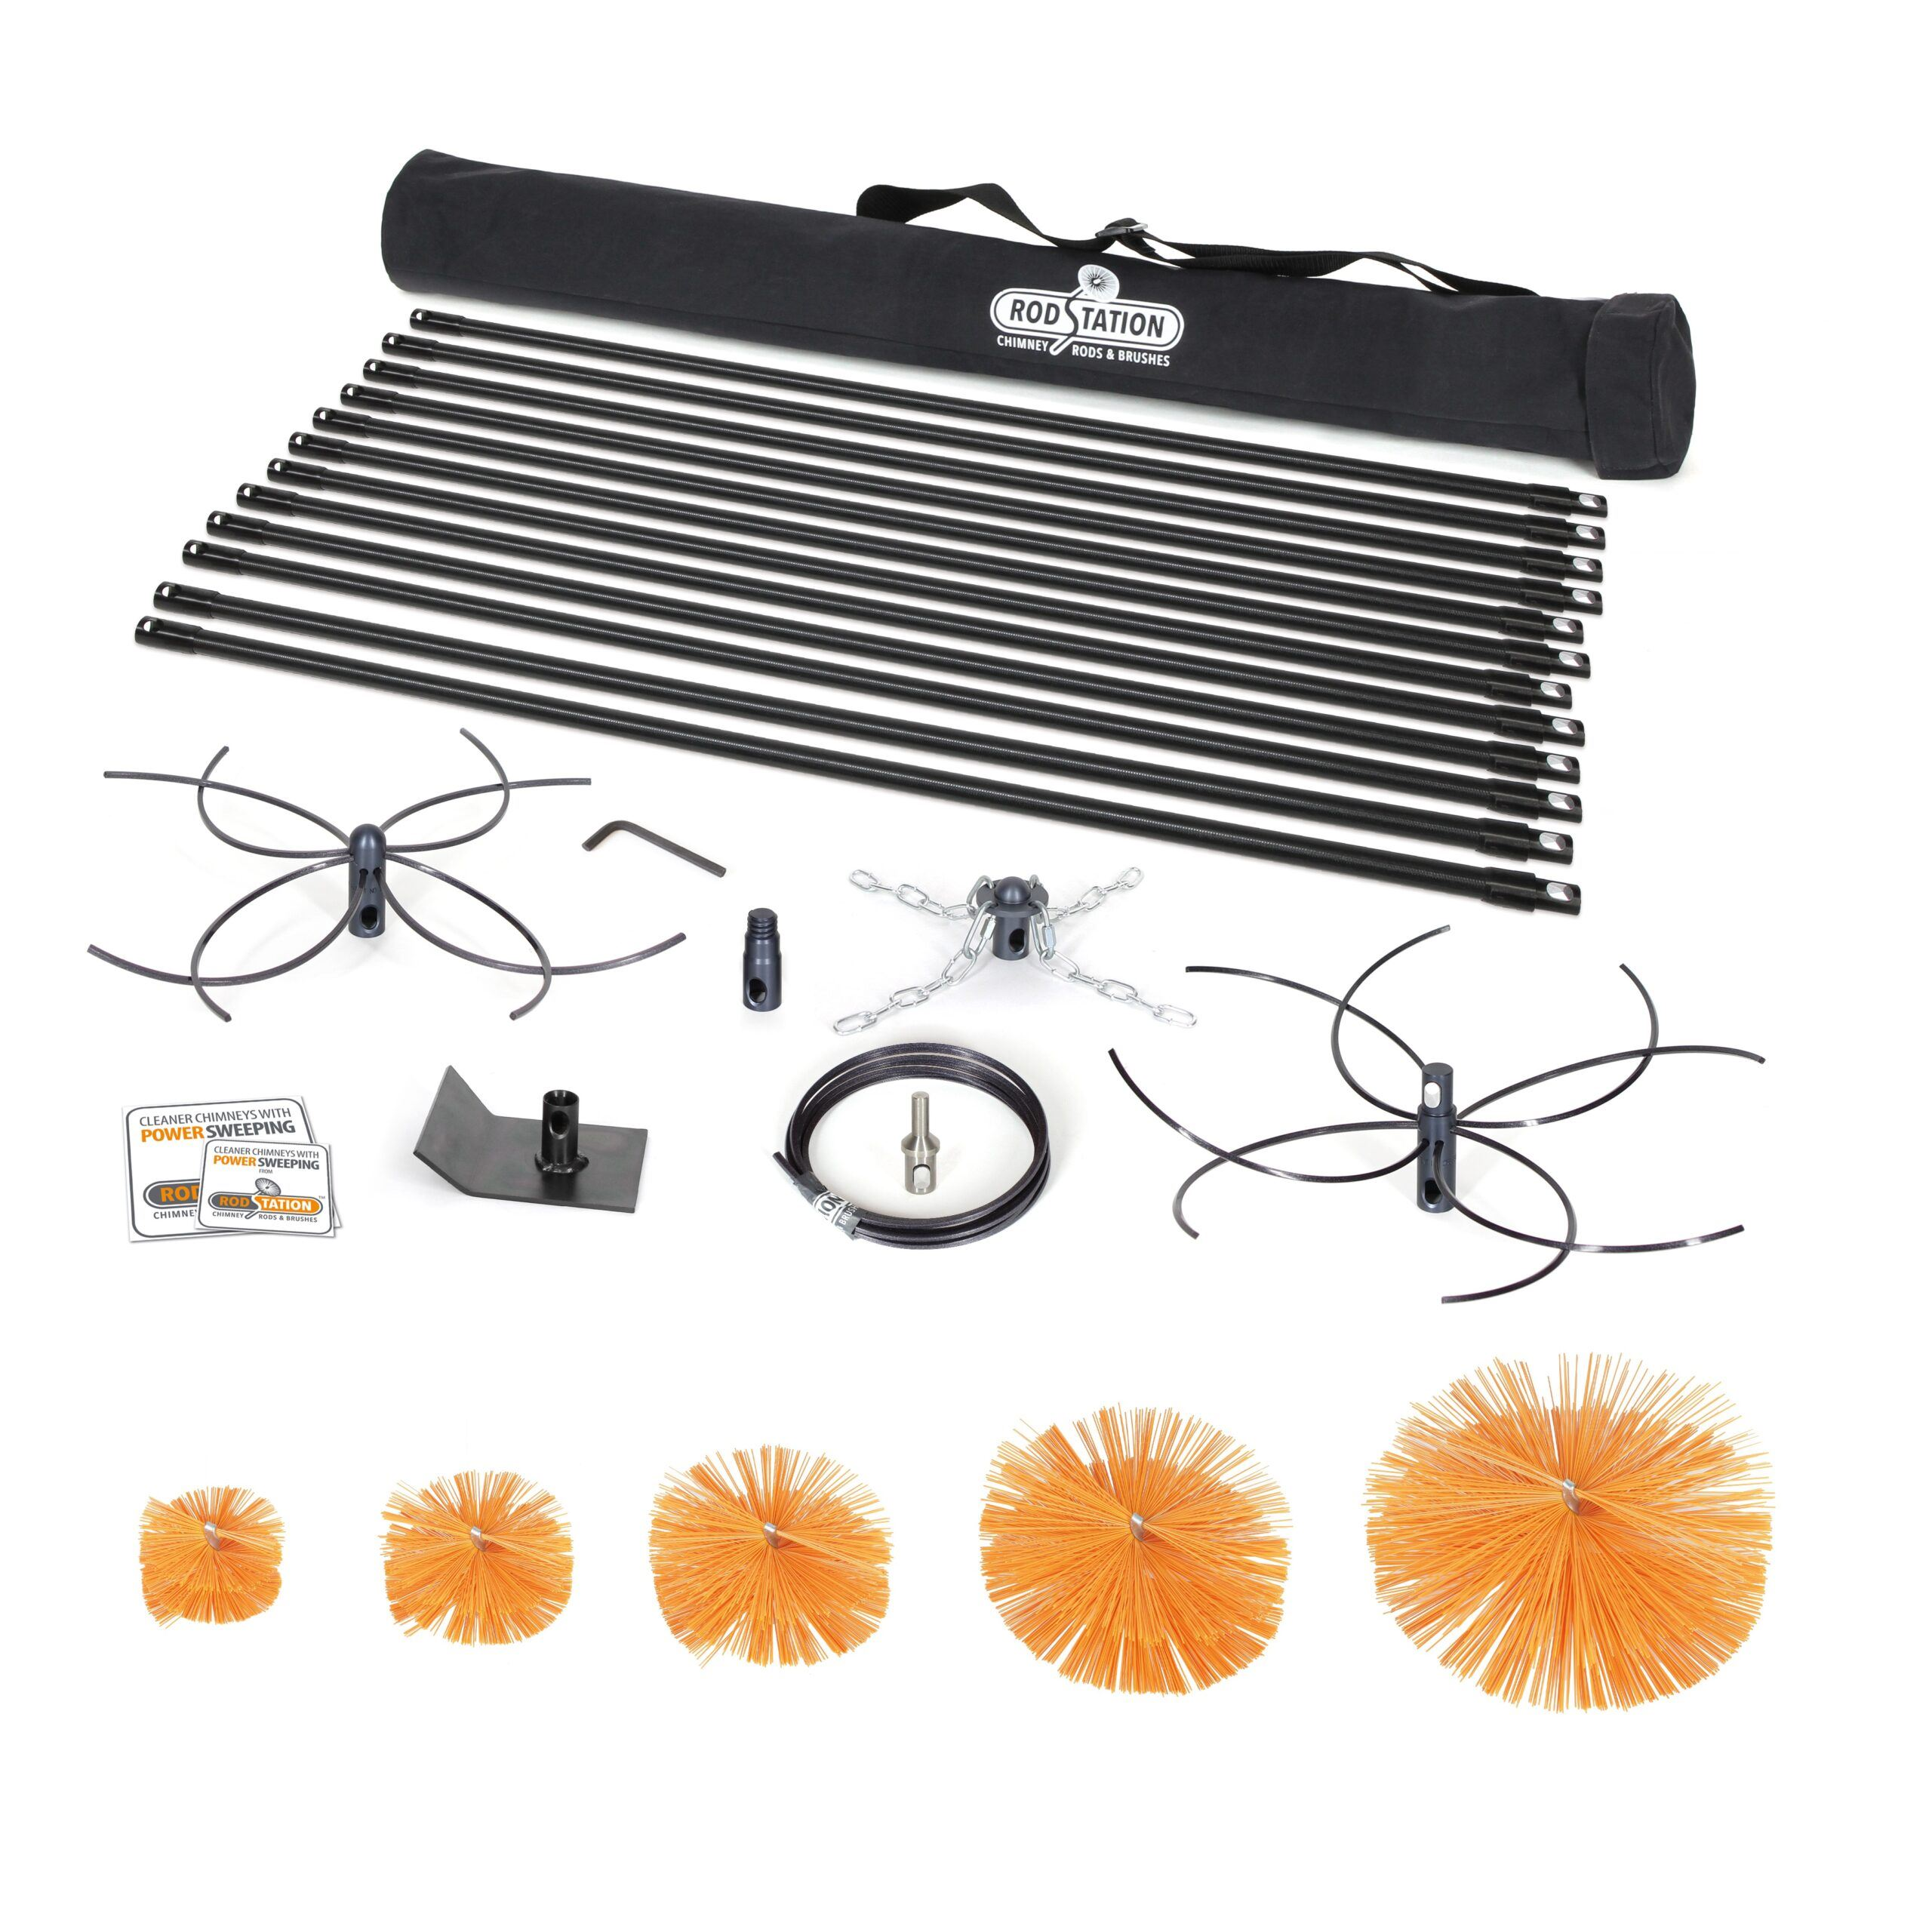 Open power kit with manual brushes